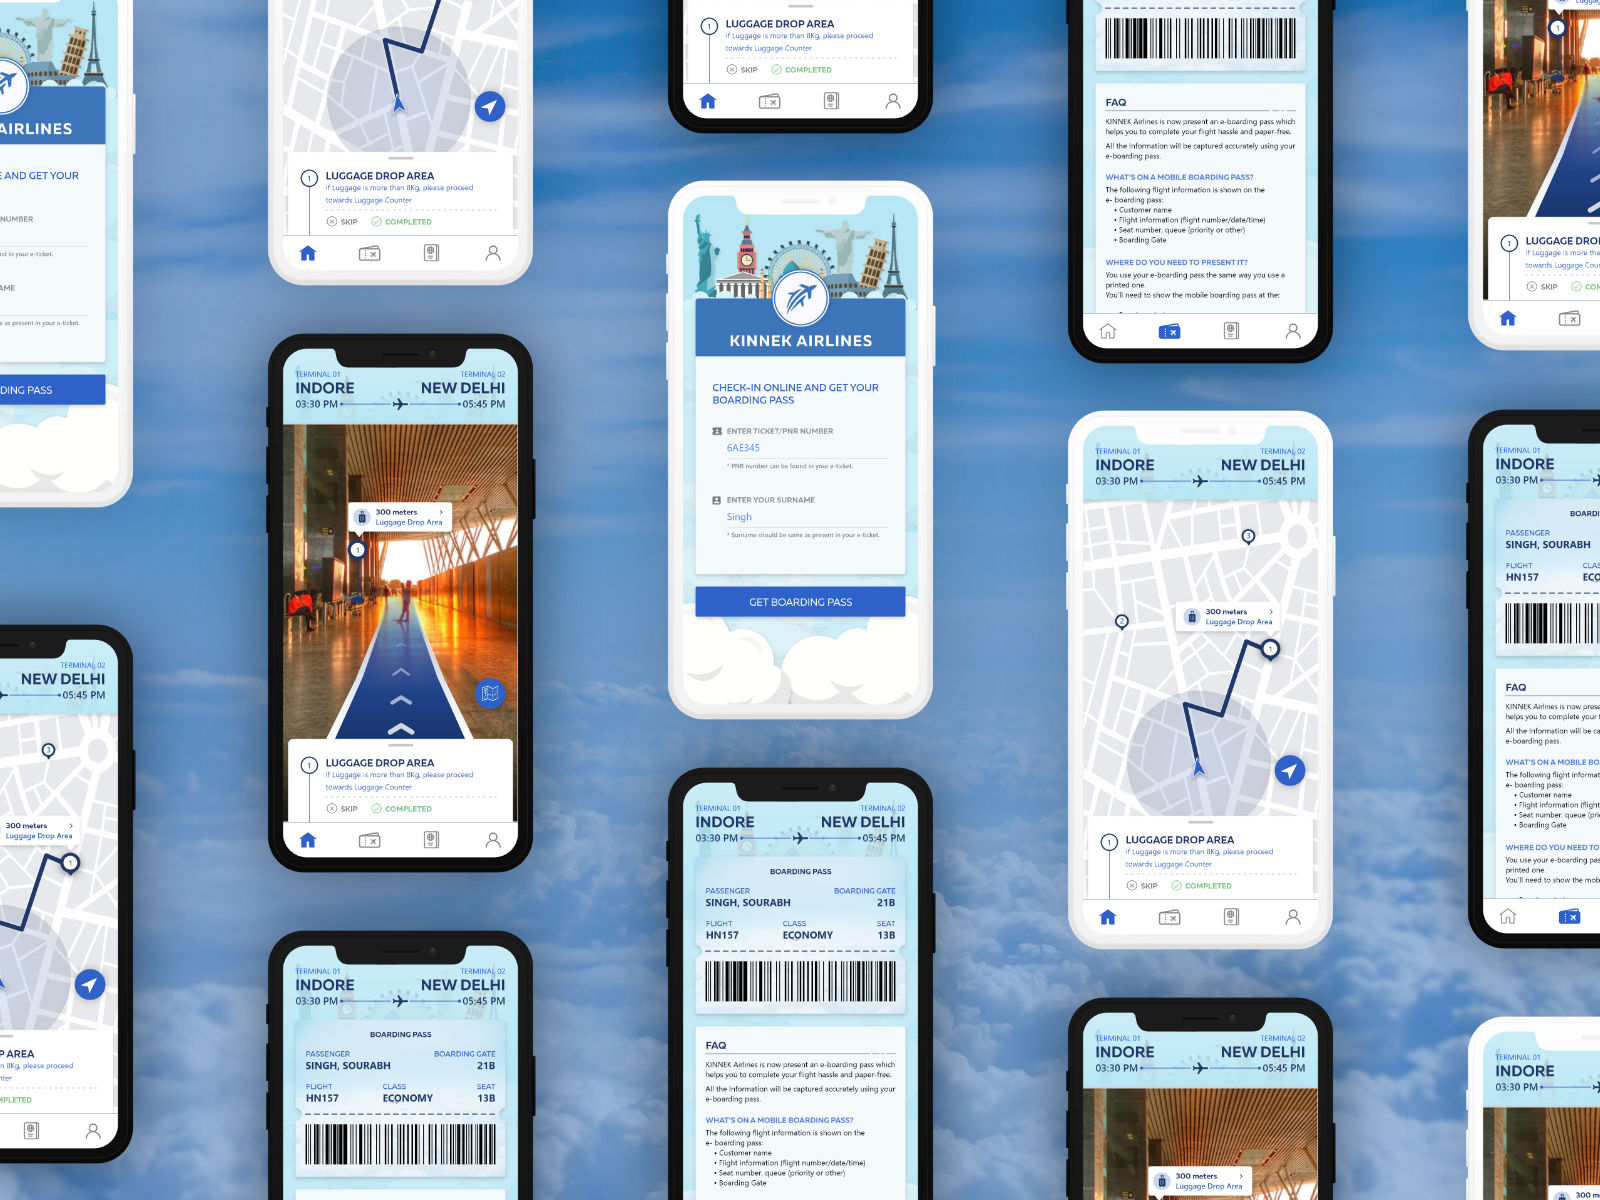 Airline Assistance Application: Adobe XD